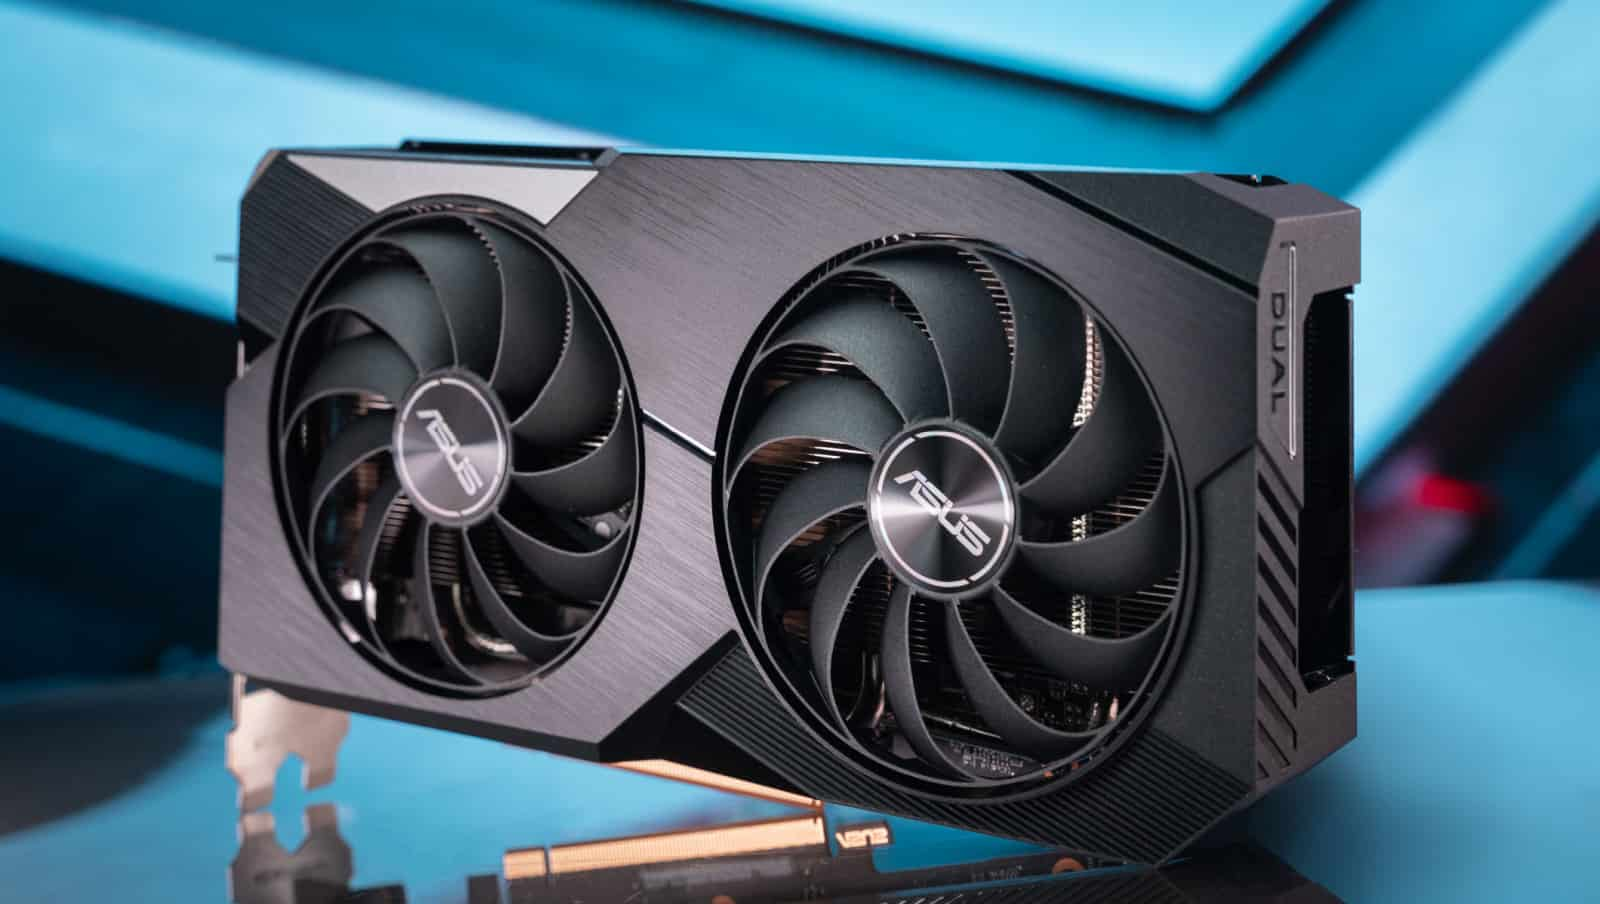 AMD Says Its Radeon RX 6600 Is On Par With The NVIDIA RTX 3060